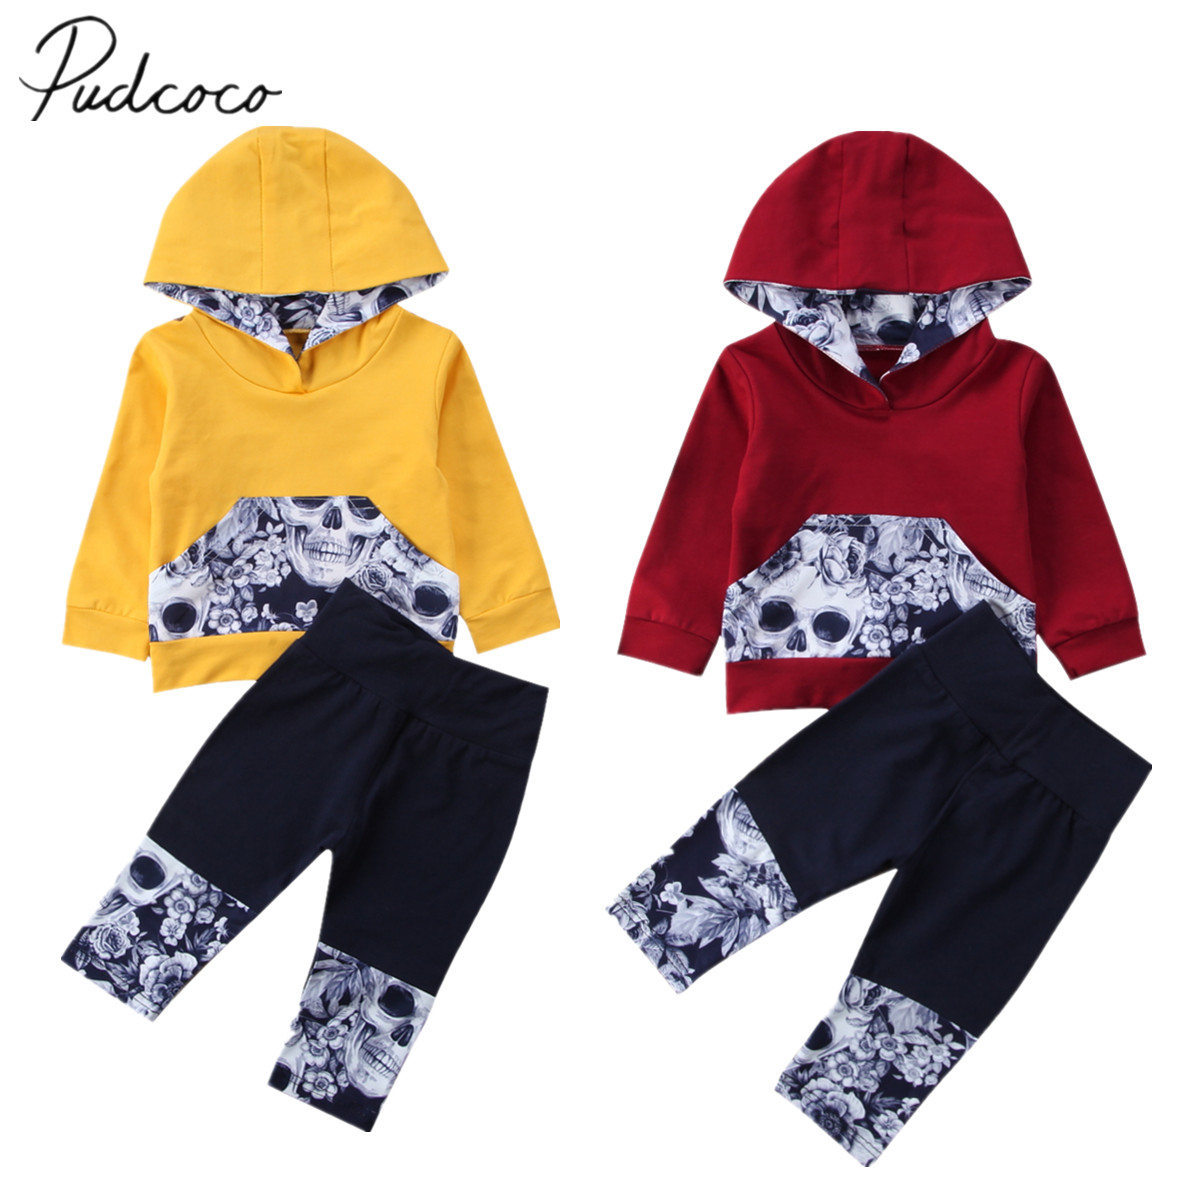 2017 Brand New 2pcs Newborn Toddler Infant Baby Boys Girls Skull Floral Hooded Sweater Top Pants Outfits Set Spring Fall Clothes